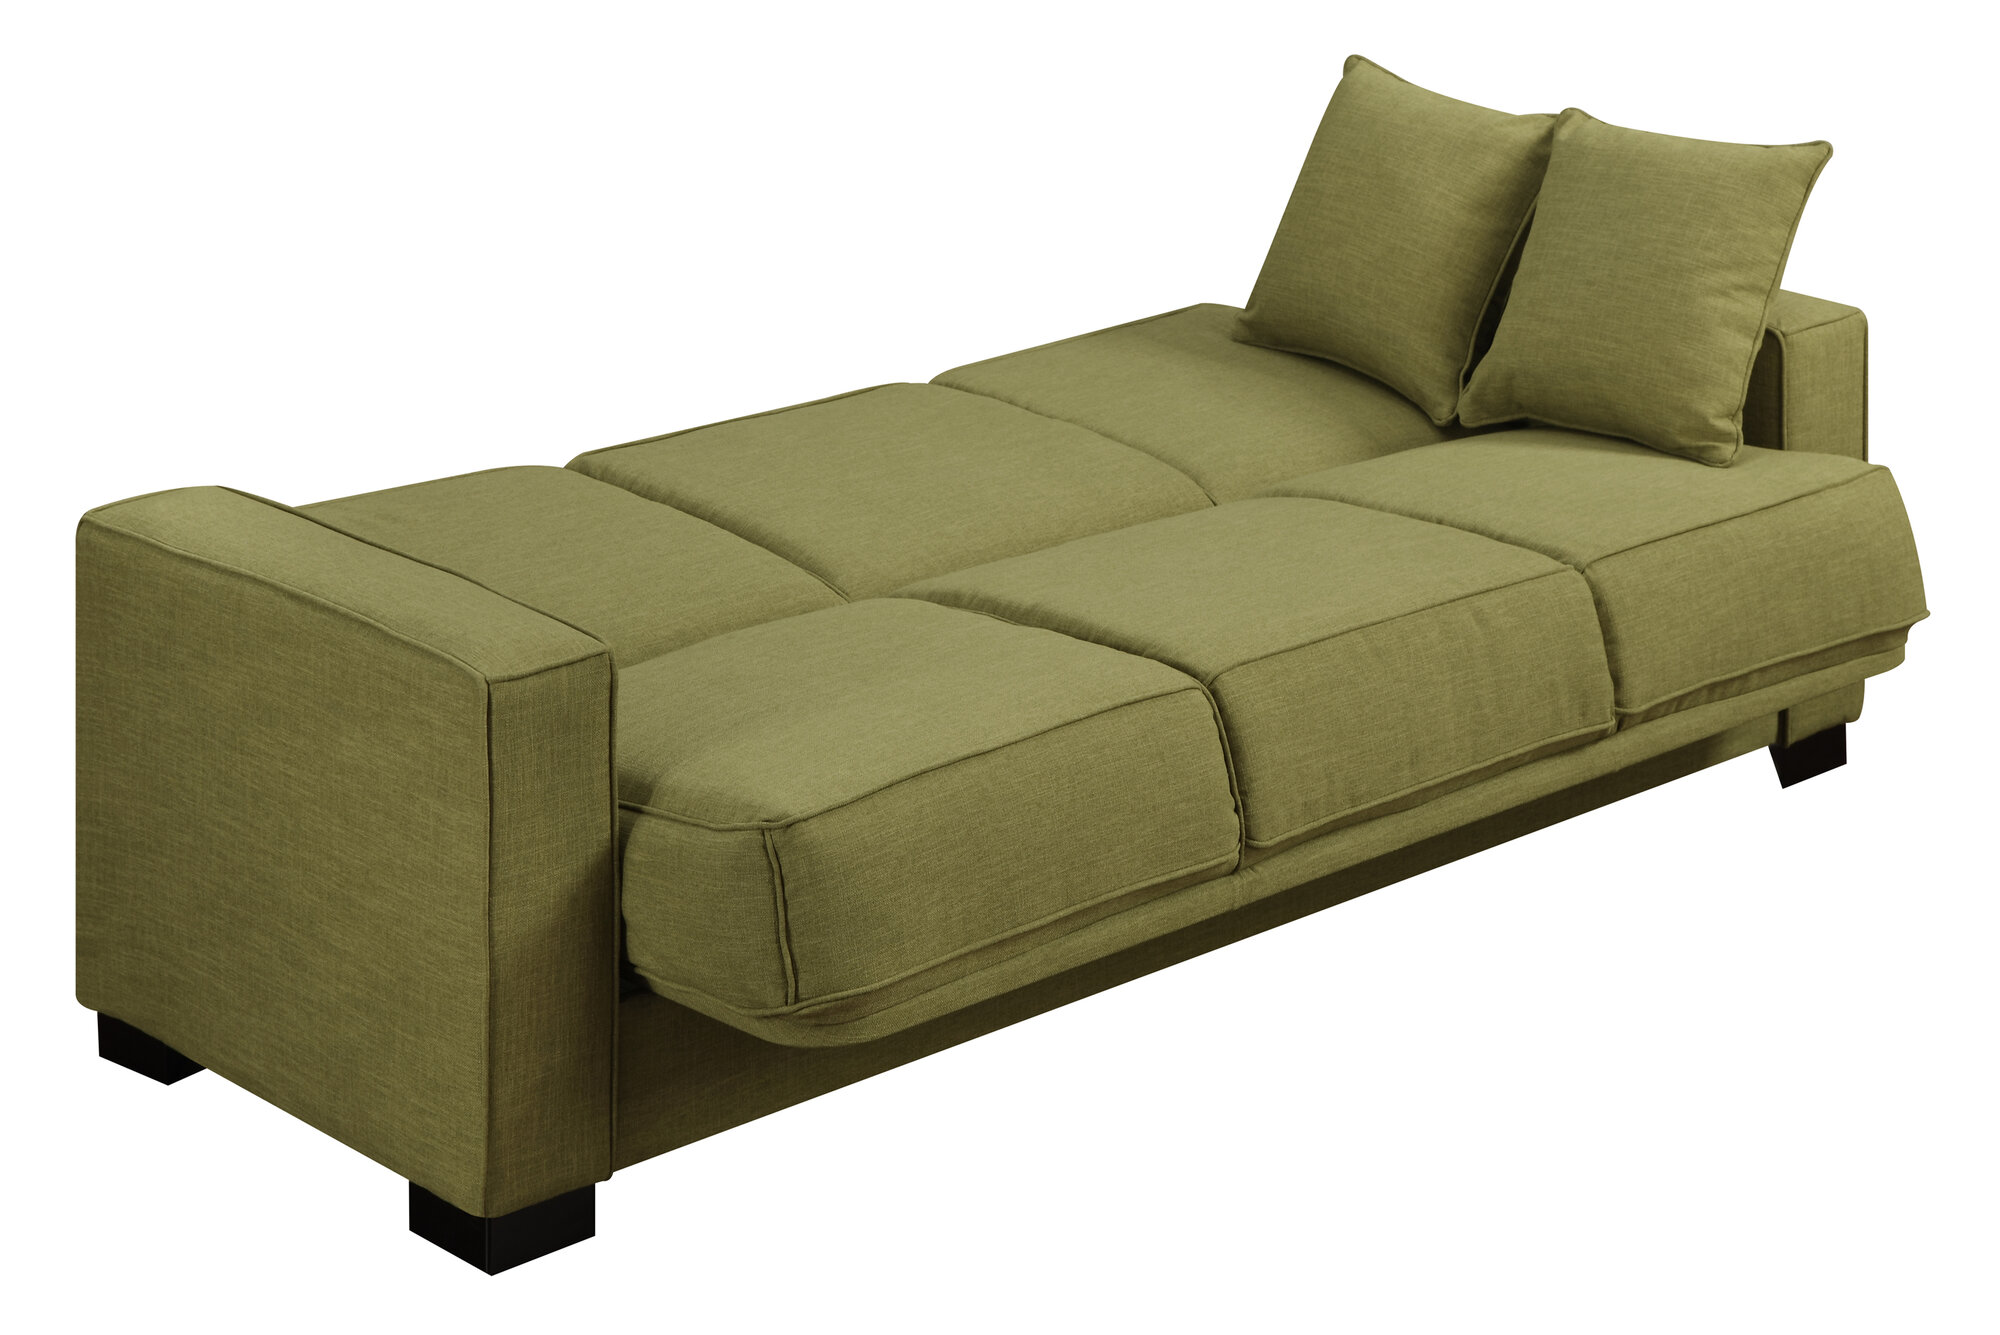 Handy Living Convert A Couch : Handy Living Malibu Convert-a-Couch Sleeper Sofa  eBay